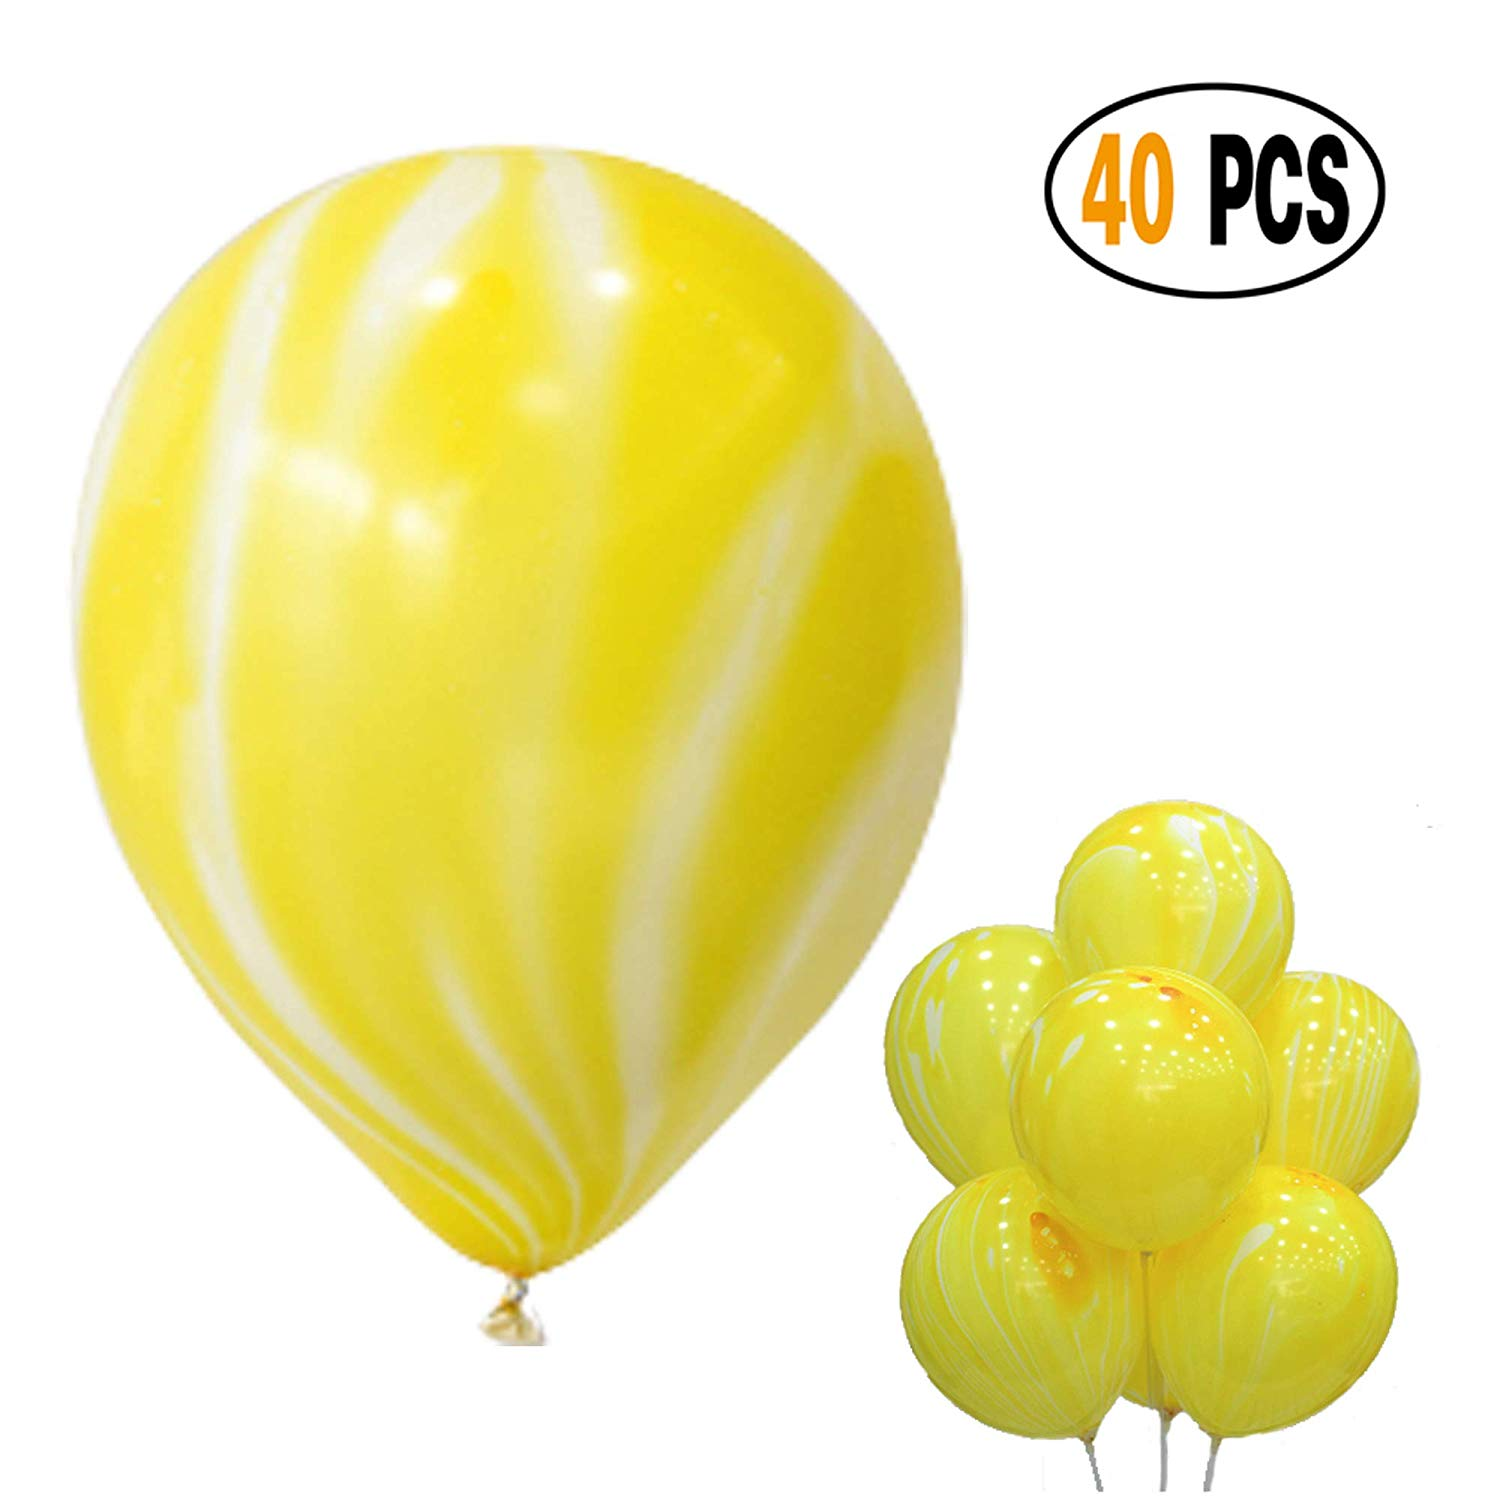 Cheap Tie Dye Balloons Find Tie Dye Balloons Deals On Line At